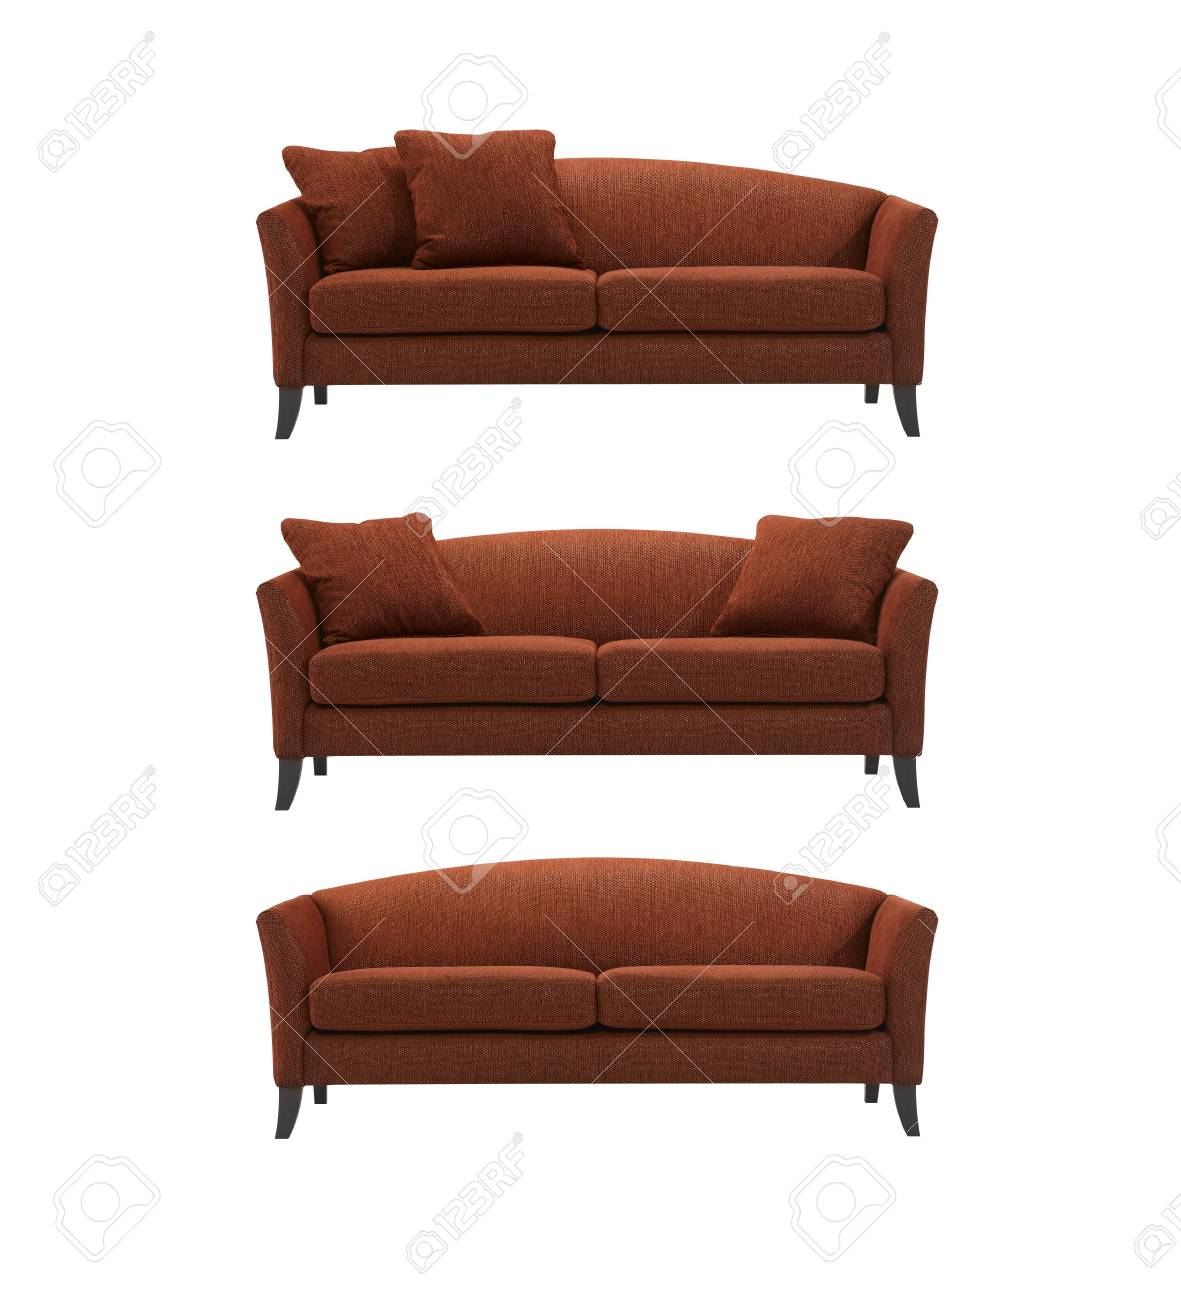 Curved Sofa Red Curved Sofa With And Without Pillows Isolated On White